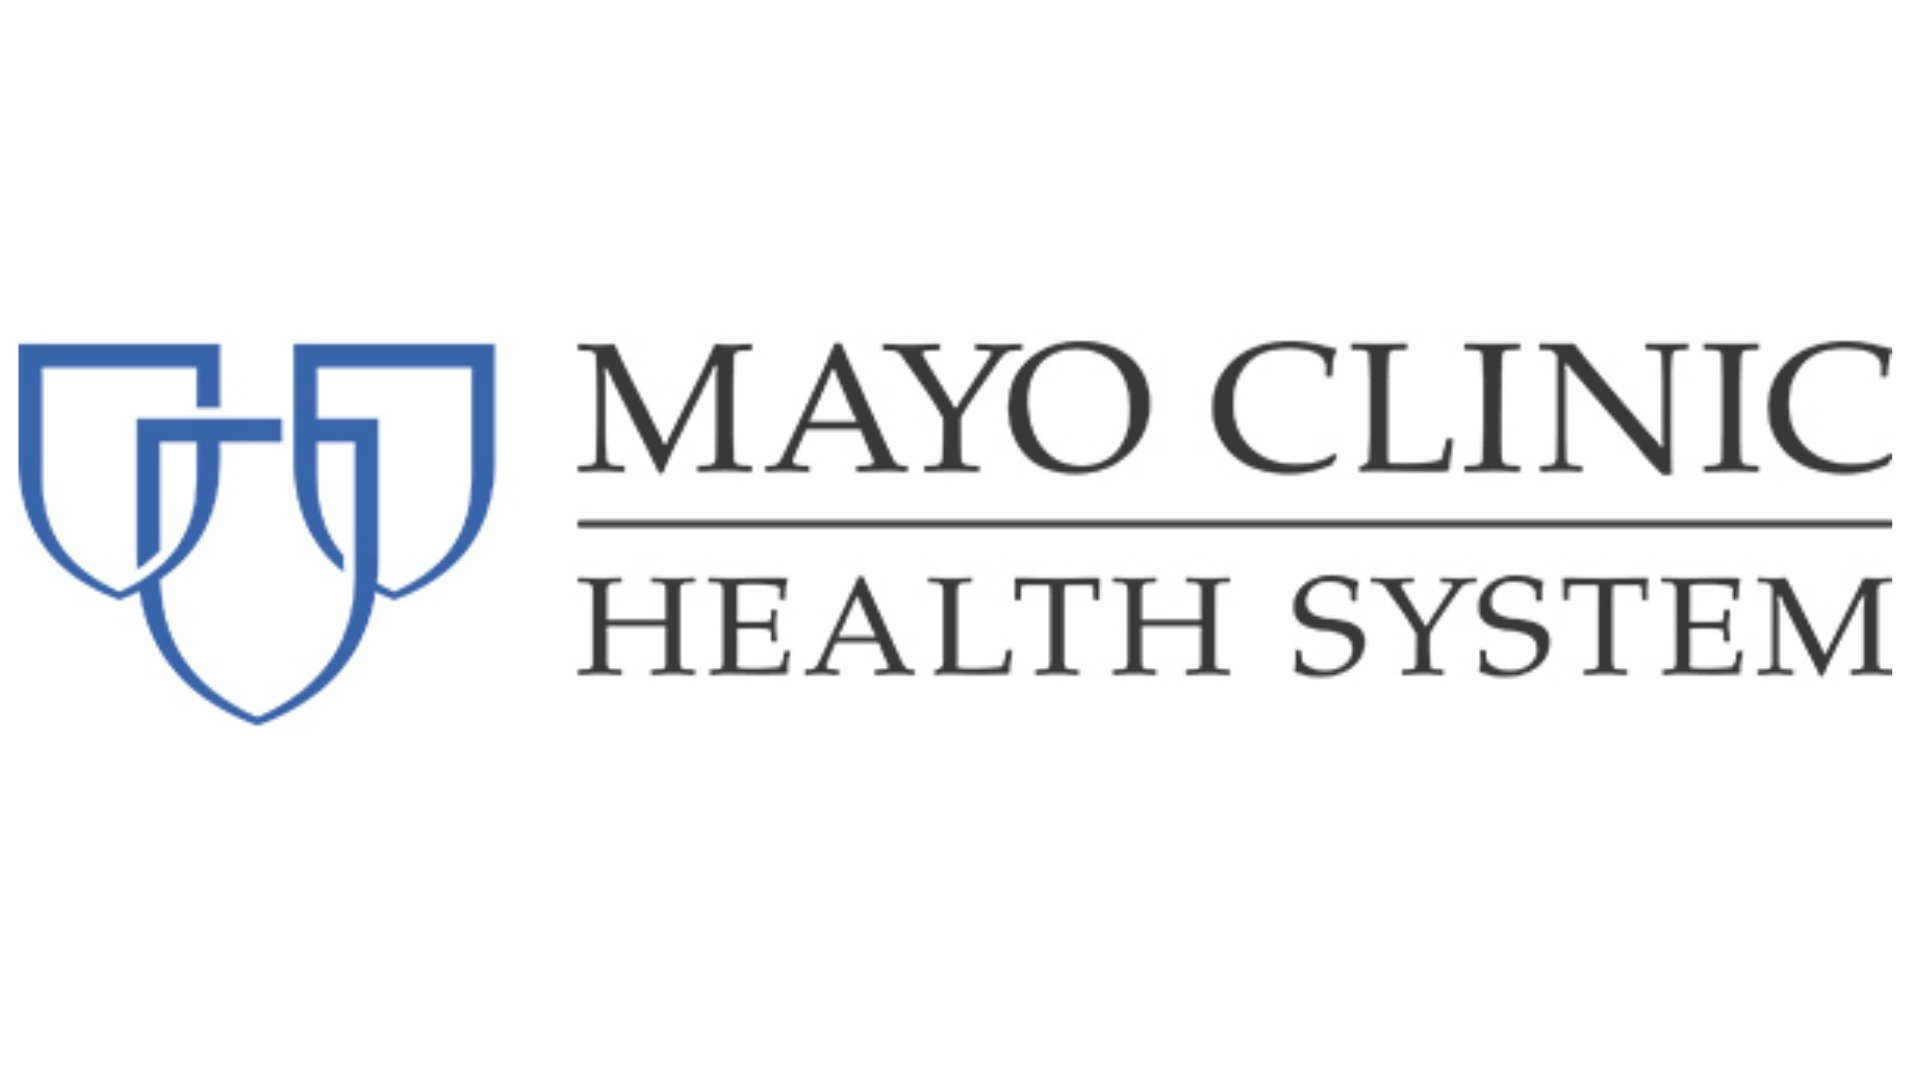 mayoclinic com website evaluation Medical reference laboratory providing esoteric and genetic testing services, test selection guidance, result interpretation references, and continuing education for.